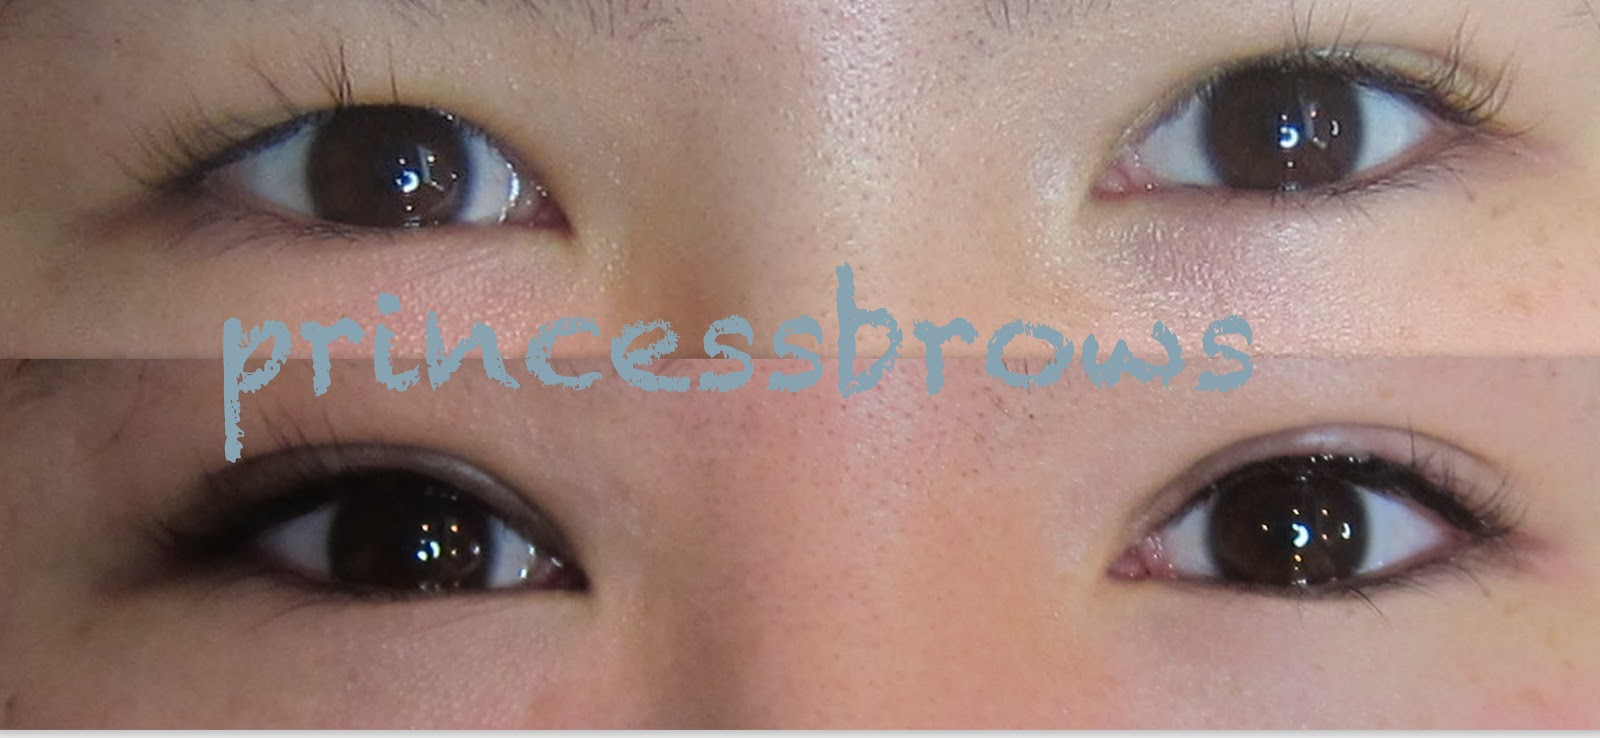 Princessbrows 隱形眼線3D Eyeliners Tattoo Ideas And Designs